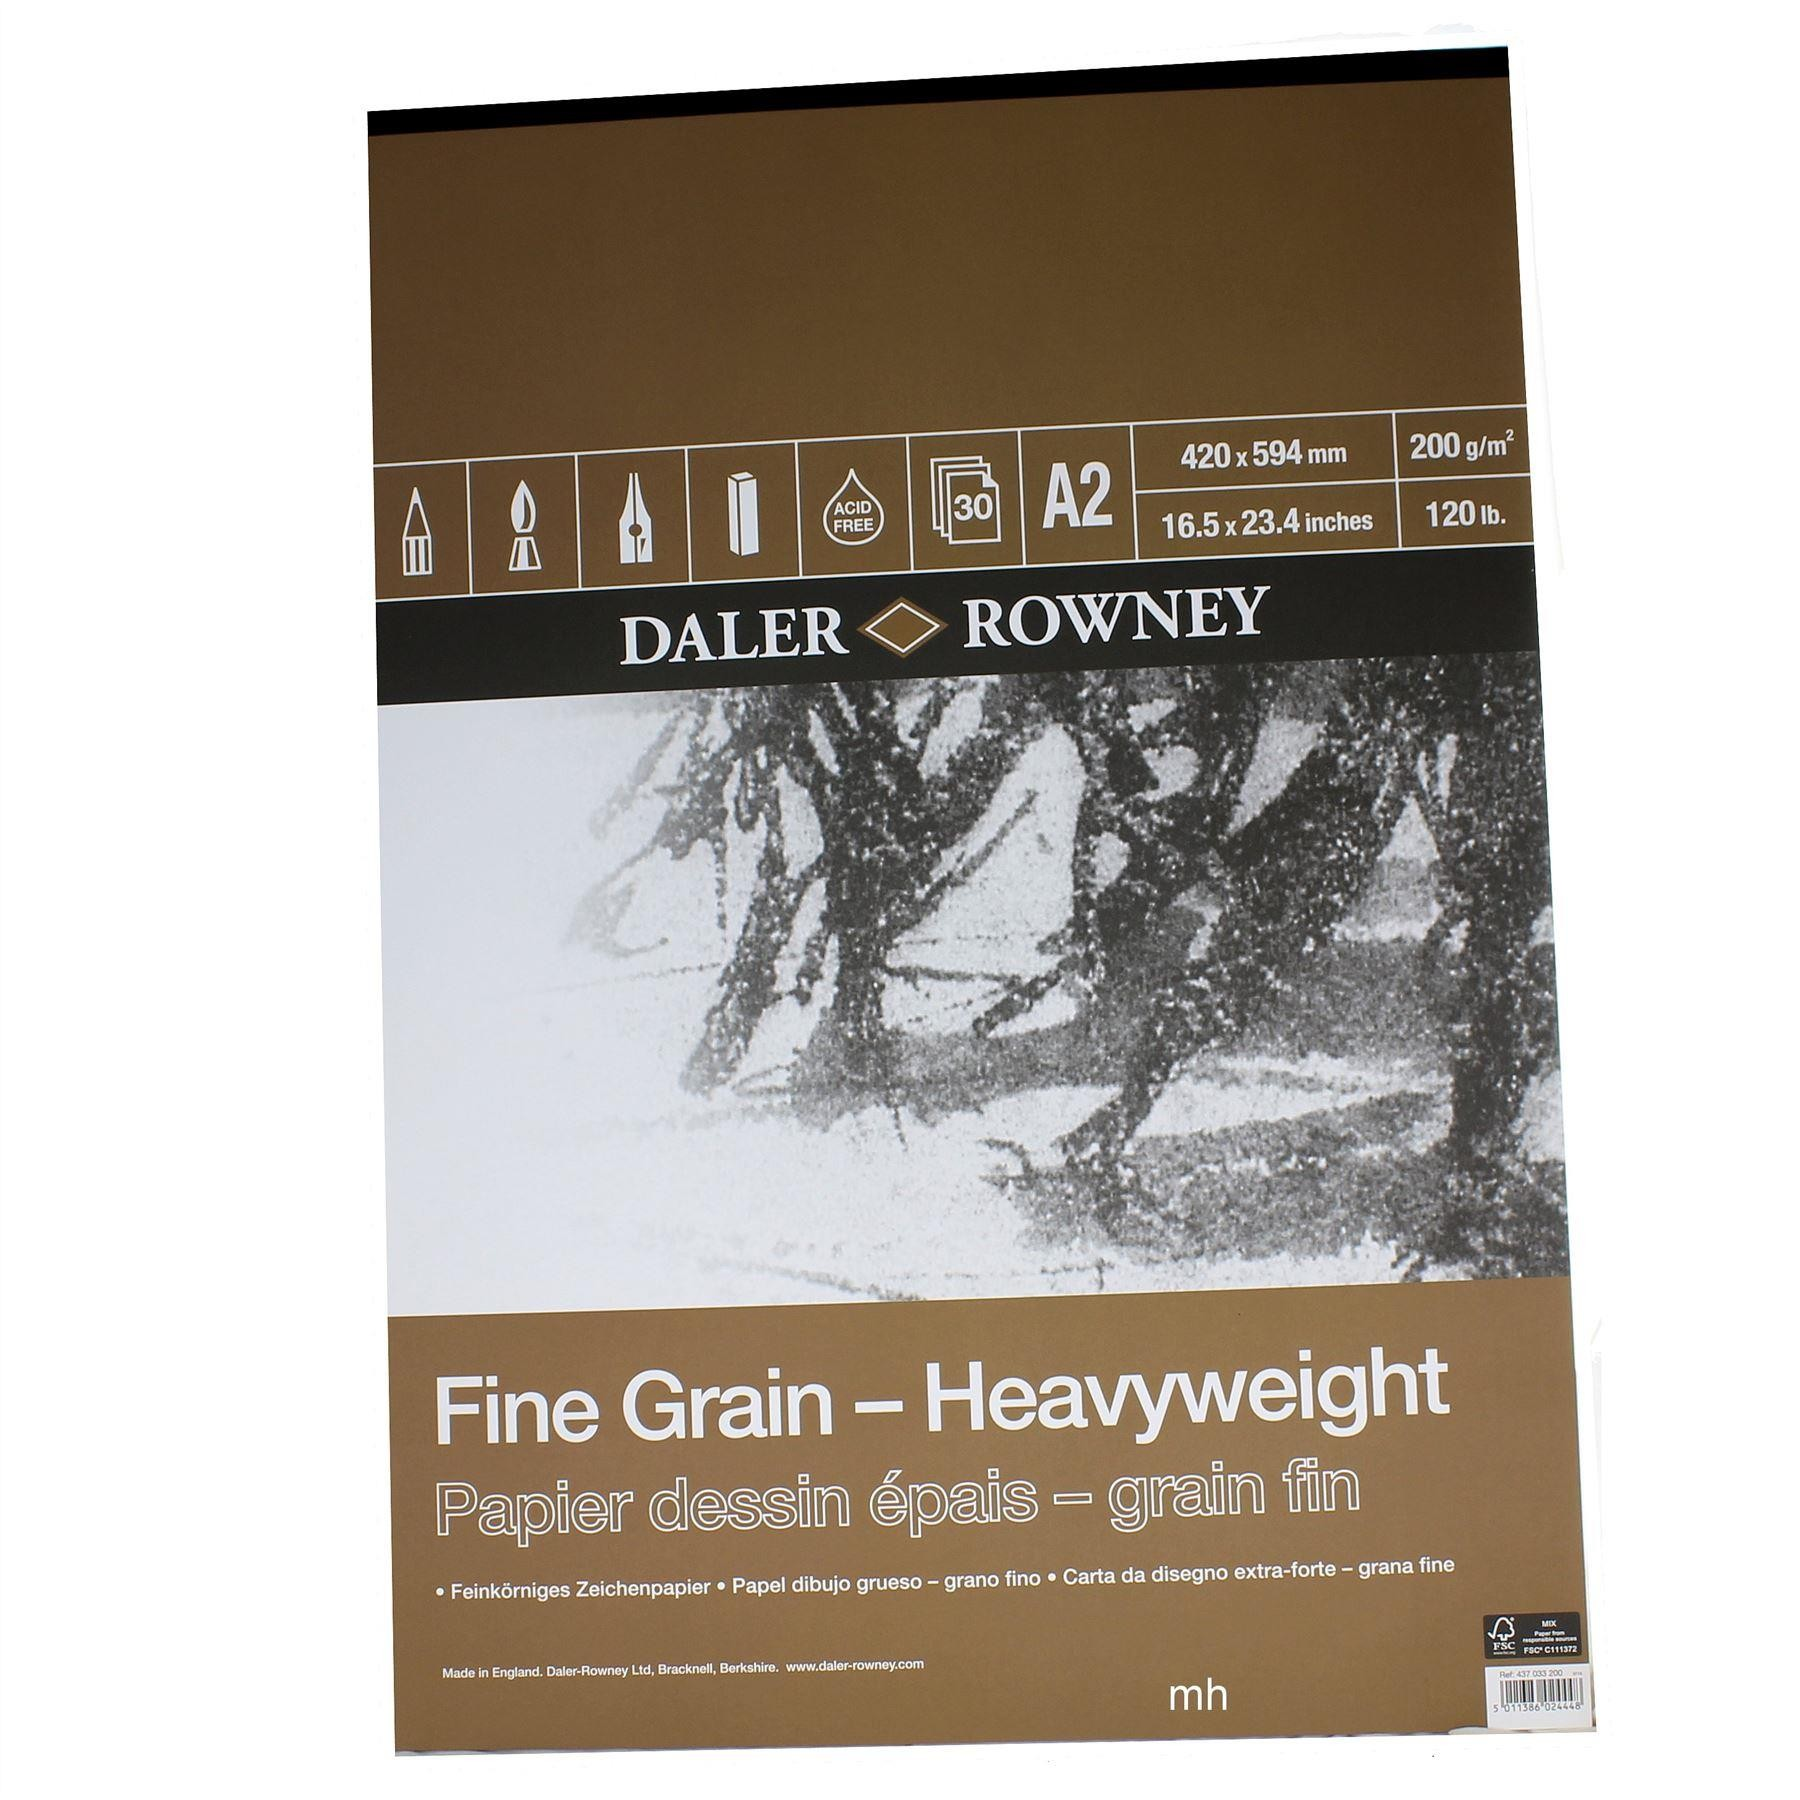 Daler Rowney Fine Grain Heavy Weight Paper Pad 200gsm